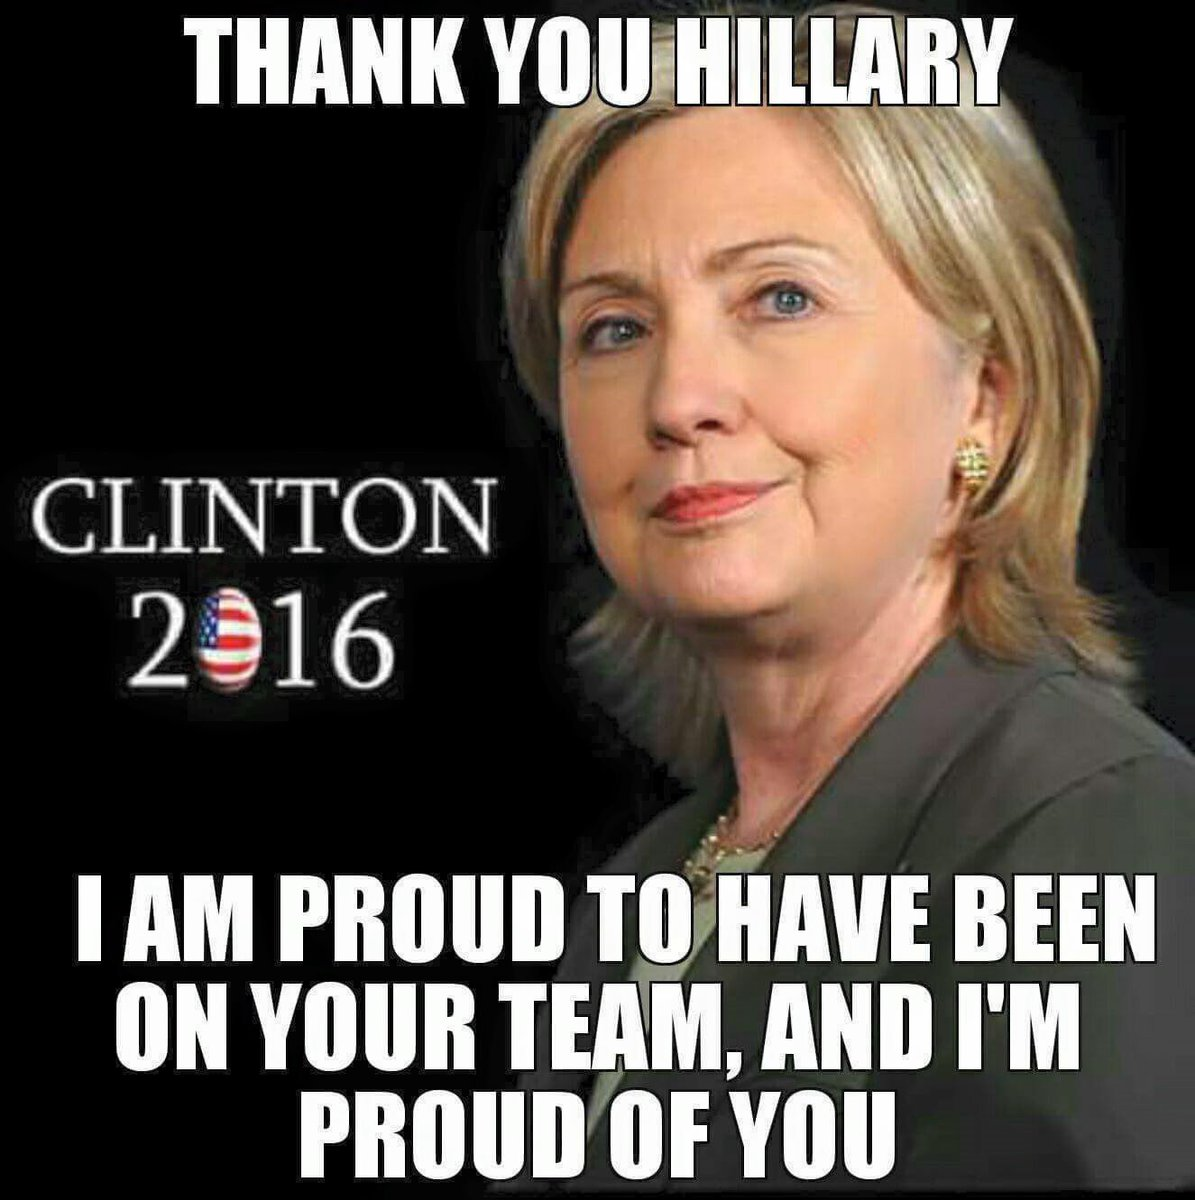 #WomenWhoHaveInspiredMe  Not just today, @HillaryClinton ; but every day for the rest of my life, you will be in my heart. #StillWithHer <br>http://pic.twitter.com/EO1XjZDywP